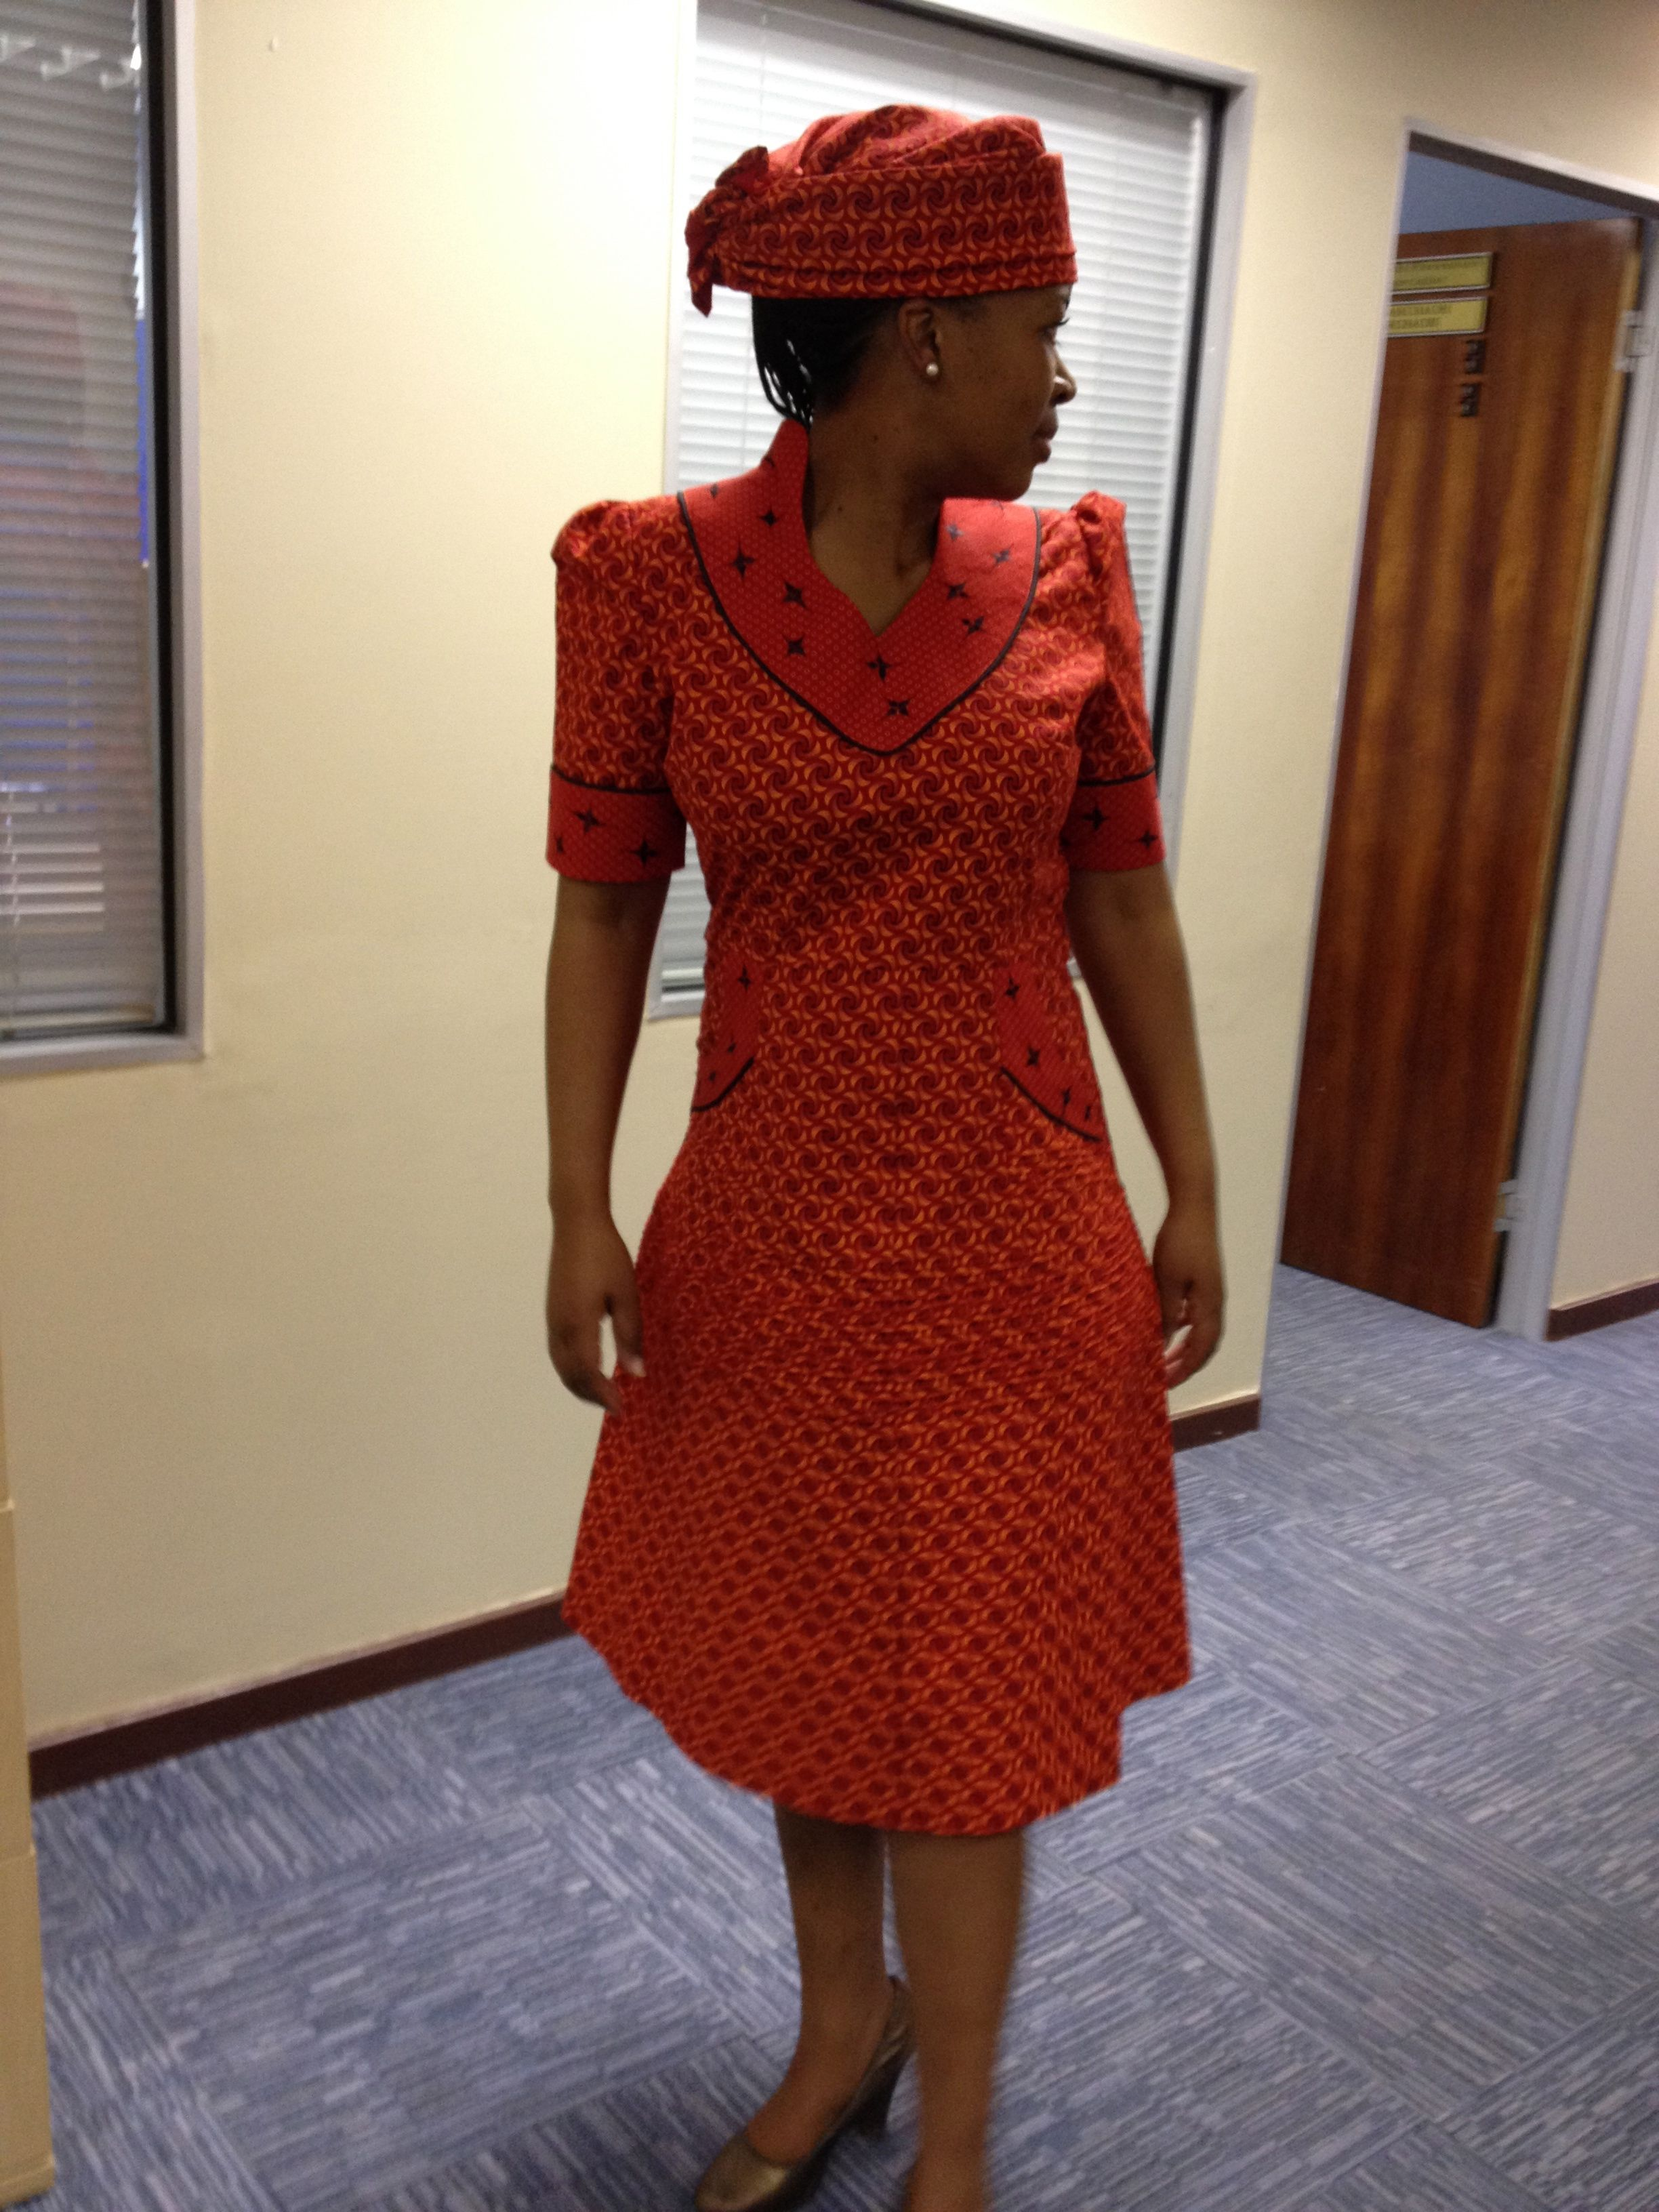 Tswana traditional dress designs 2017 styles 7 - Botle Botle